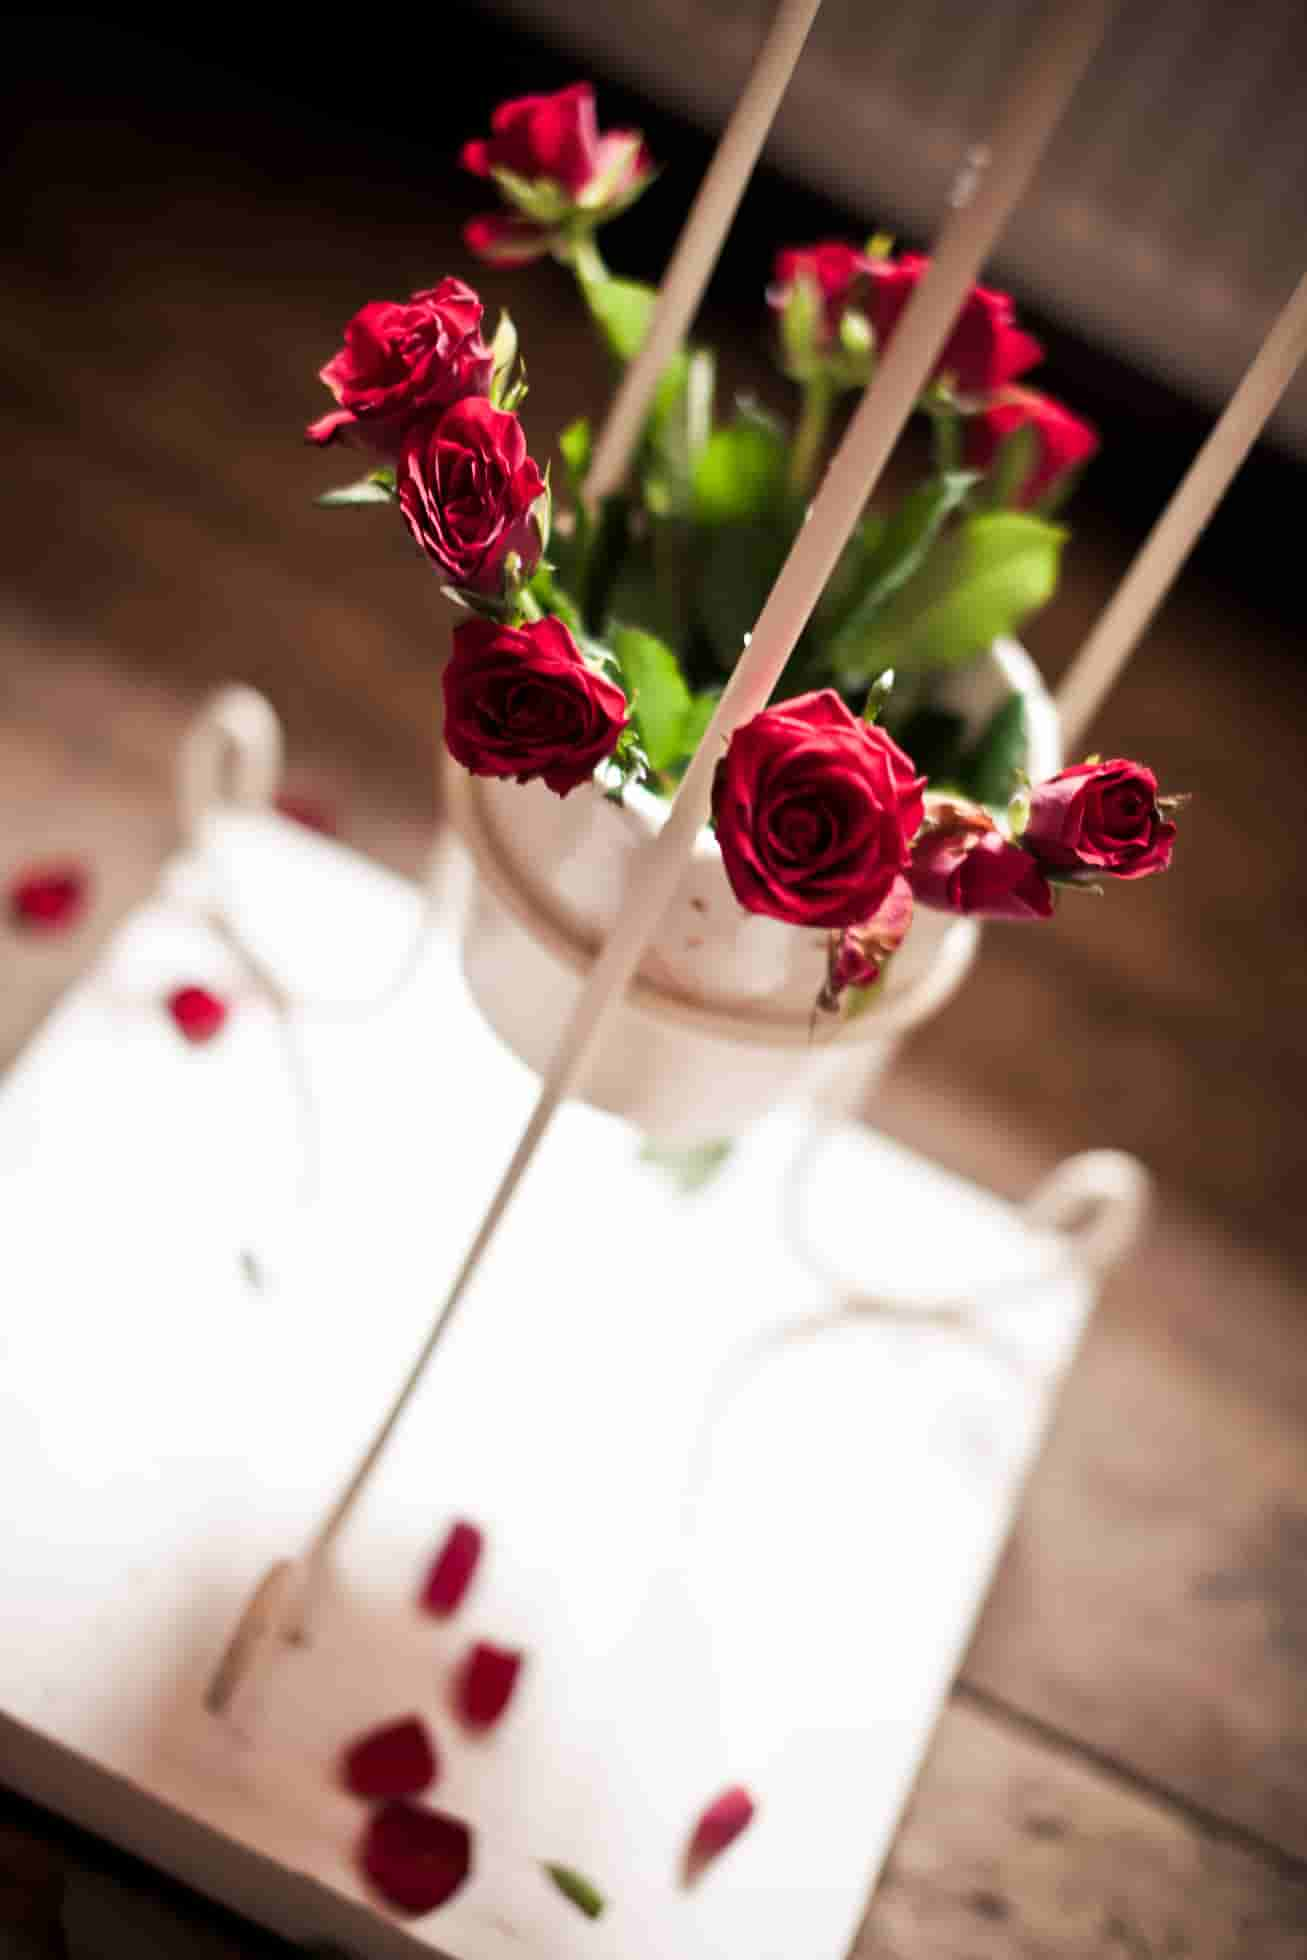 images of red rose bouquets